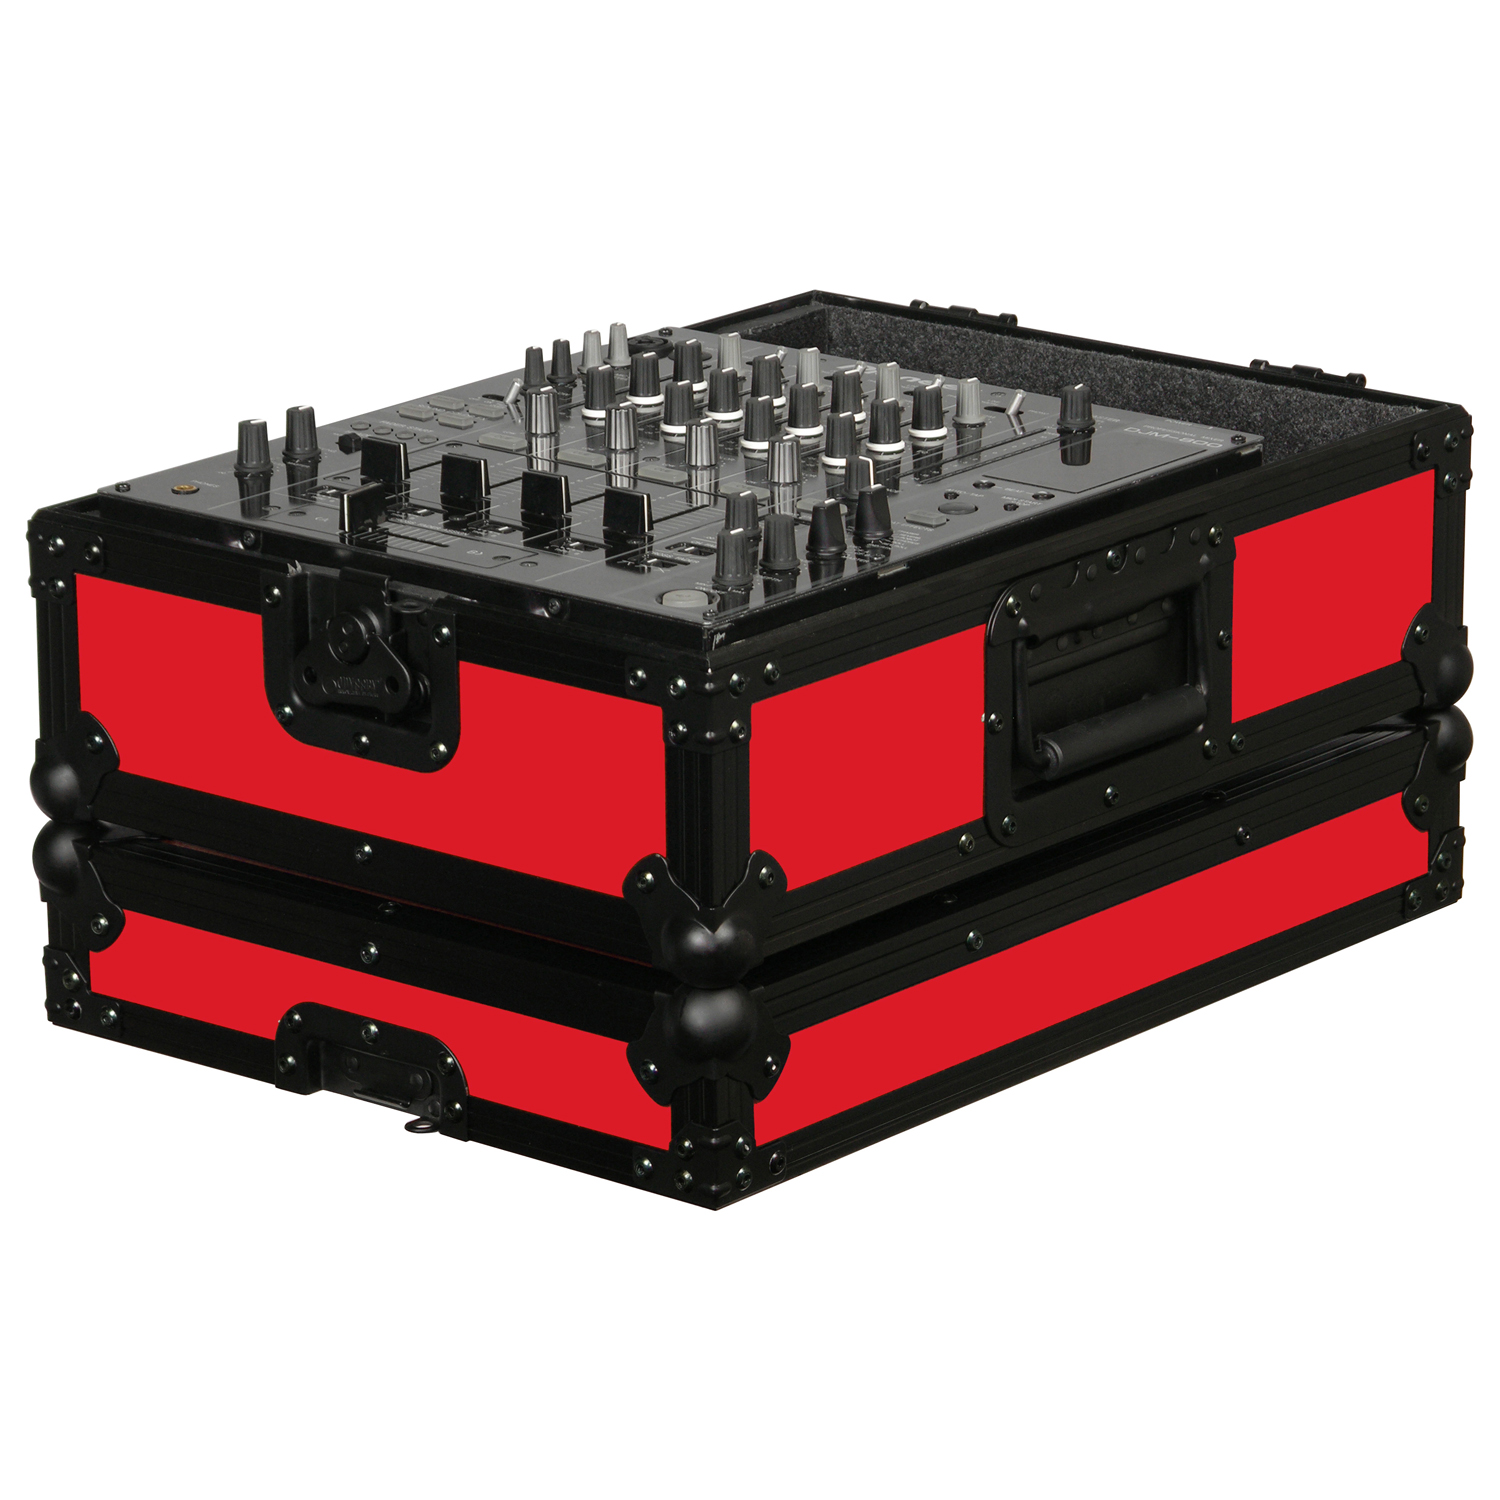 Red universal 12 inch format dj mixer case